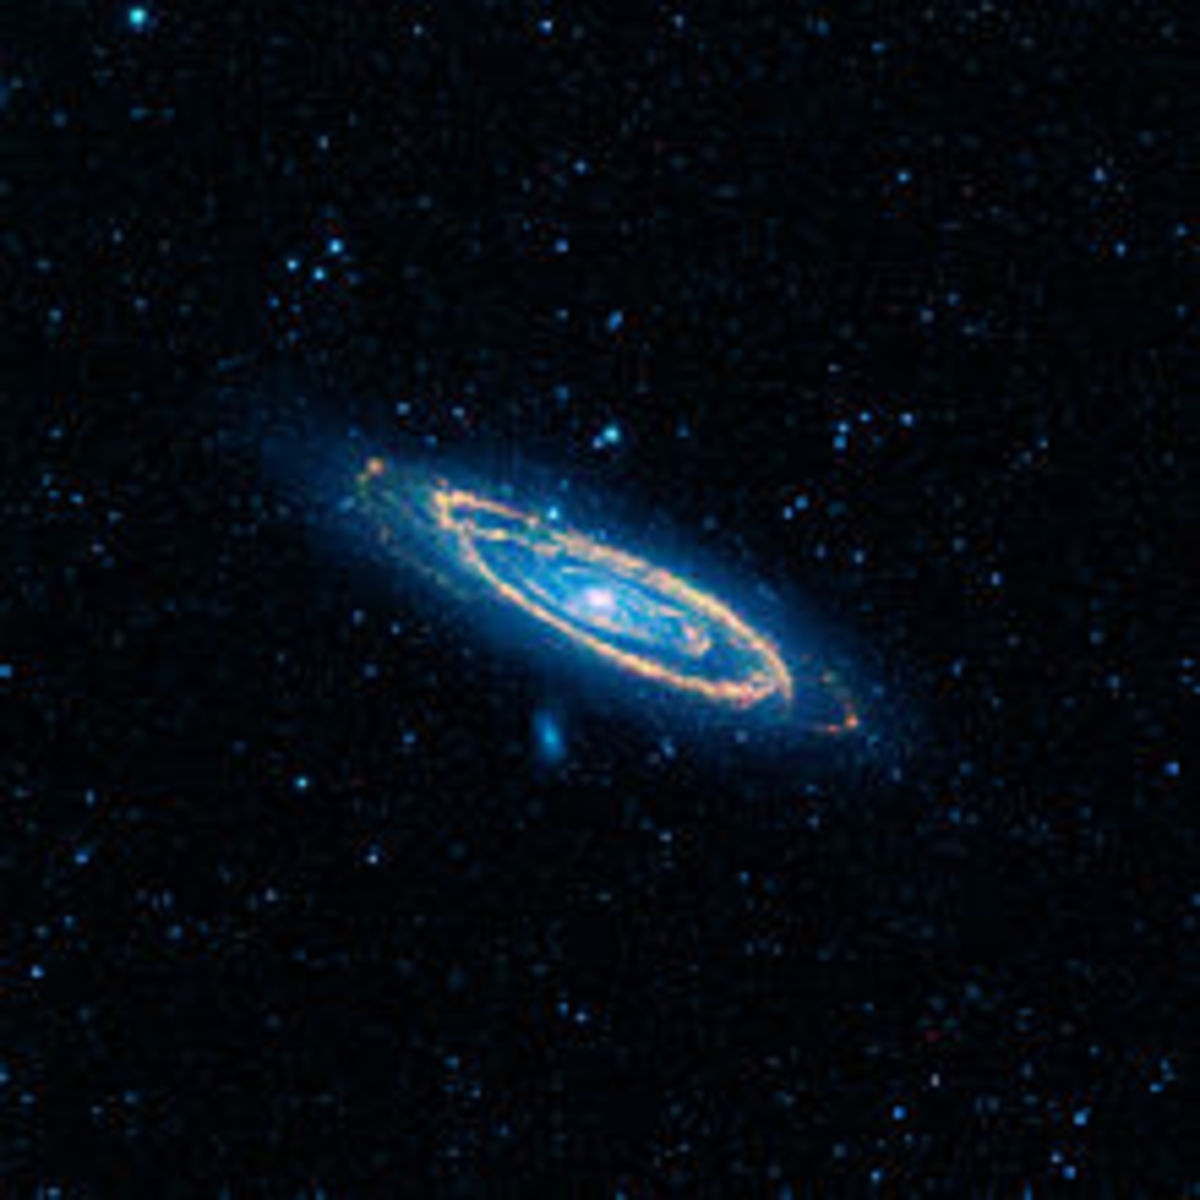 Andromeda as Seen By NSASA's Wide-Field Infrared Survey Explorer